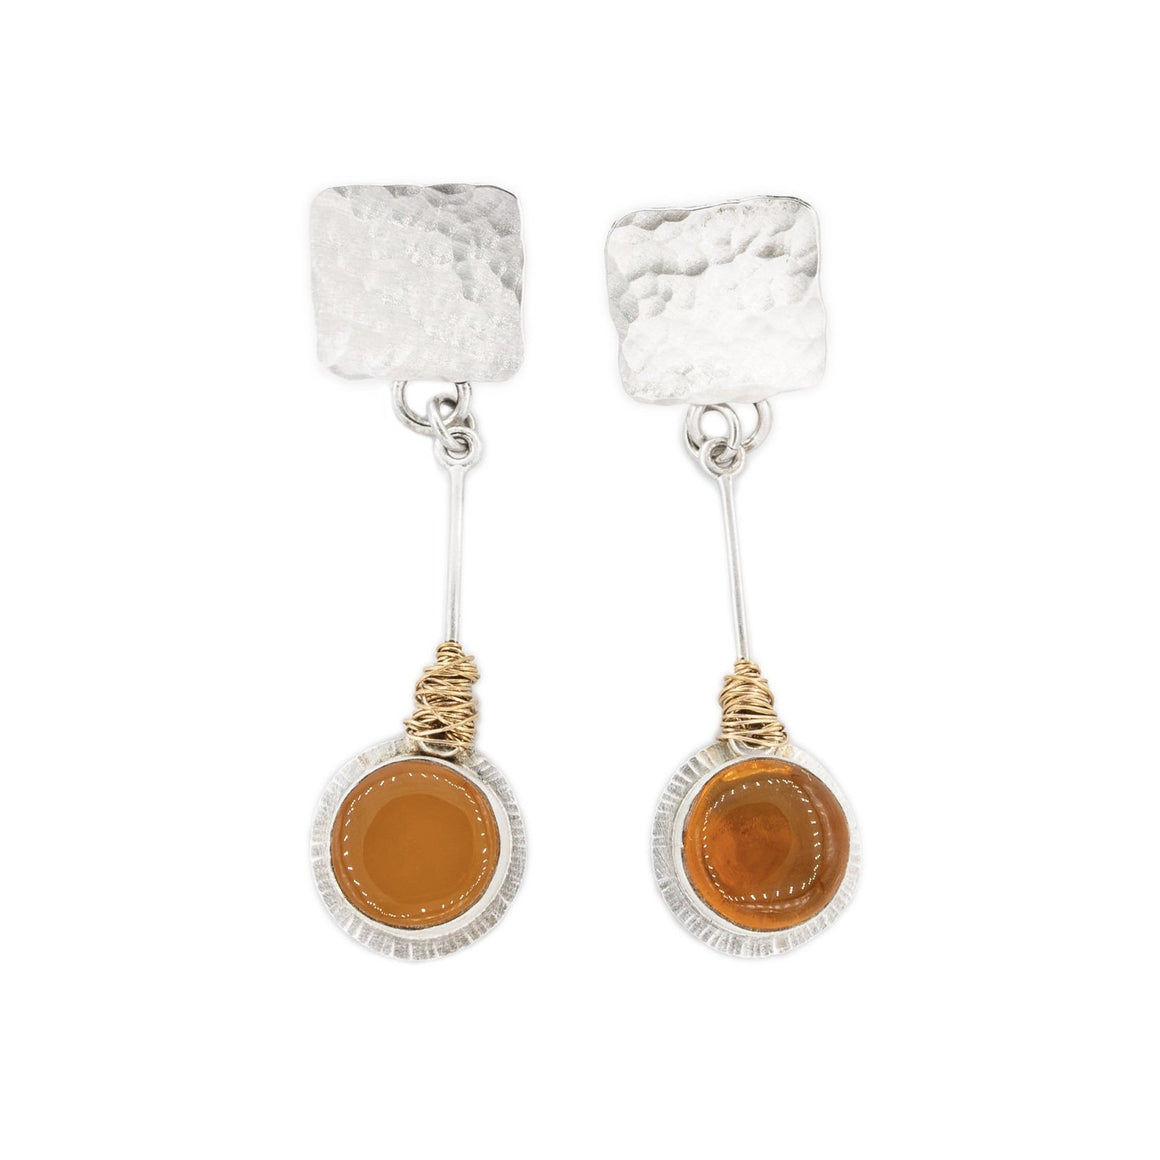 Silver Post Earrings with Fire Opal Dangles in Silver with Gold Mixed Metal Earrings by Original Sin Jewelry